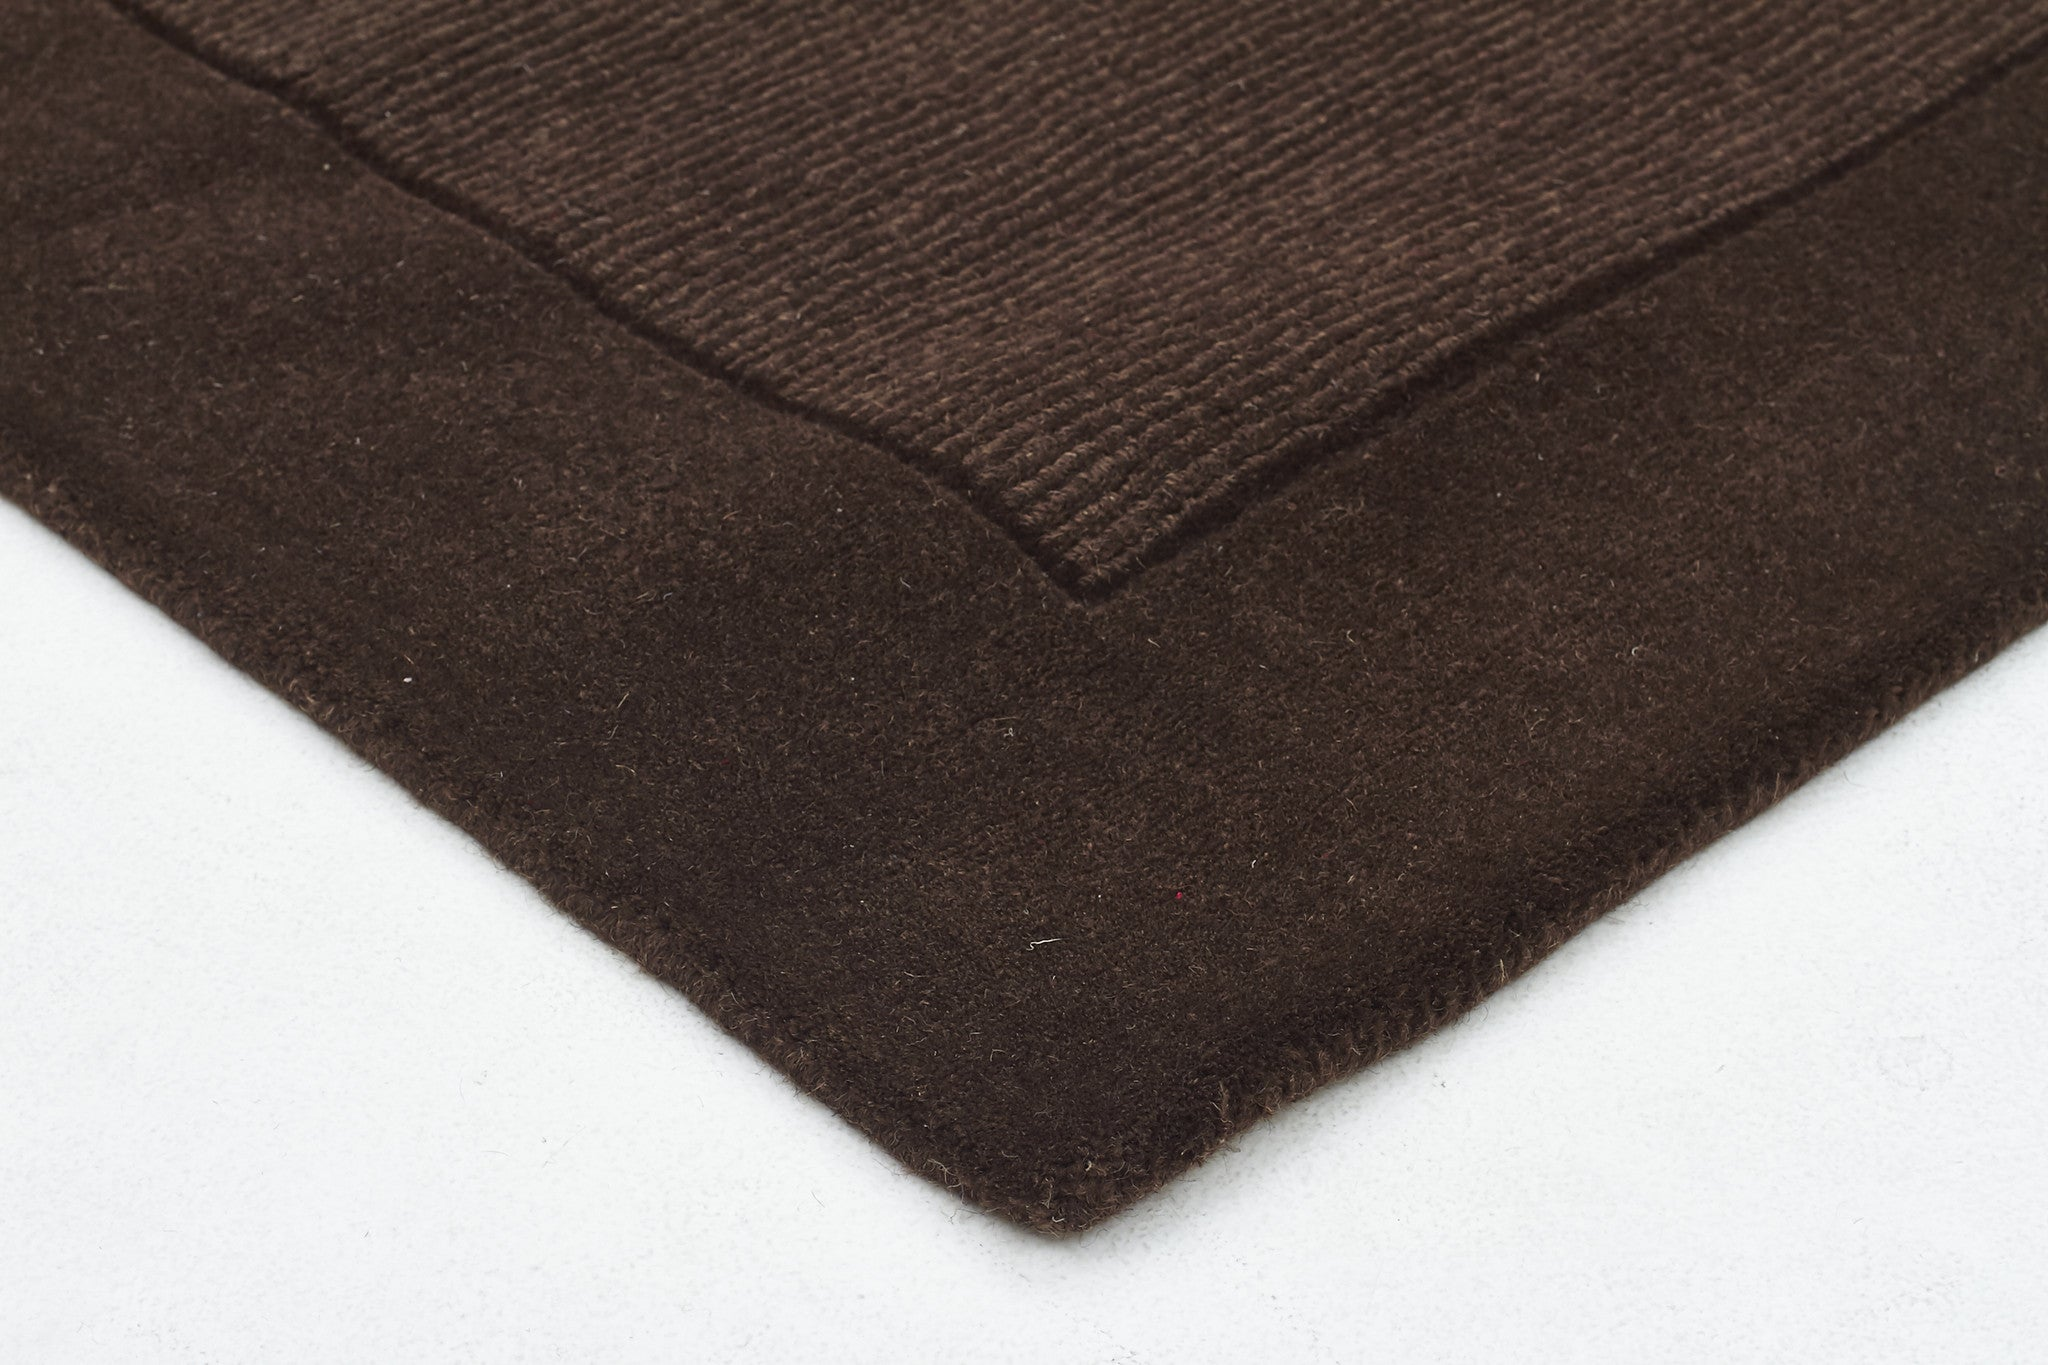 Timeless Trends Wool Rug - Chocolate